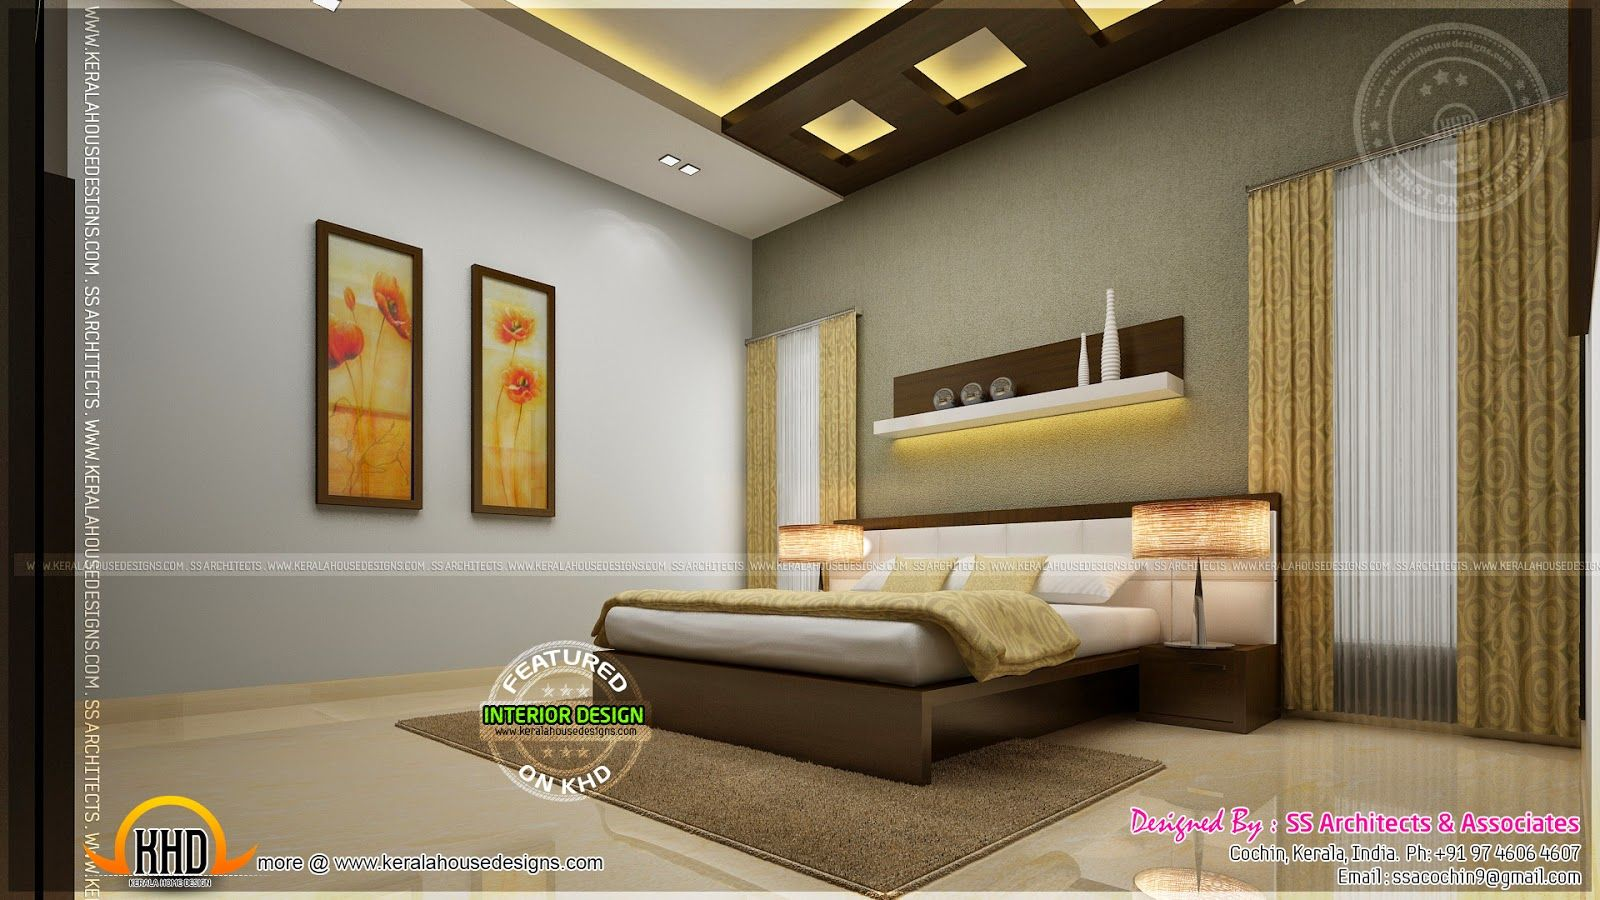 Interior Design Bedroom Entrancing Indian Master Bedroom Interior Design  Google Search  Saravanan Decorating Inspiration